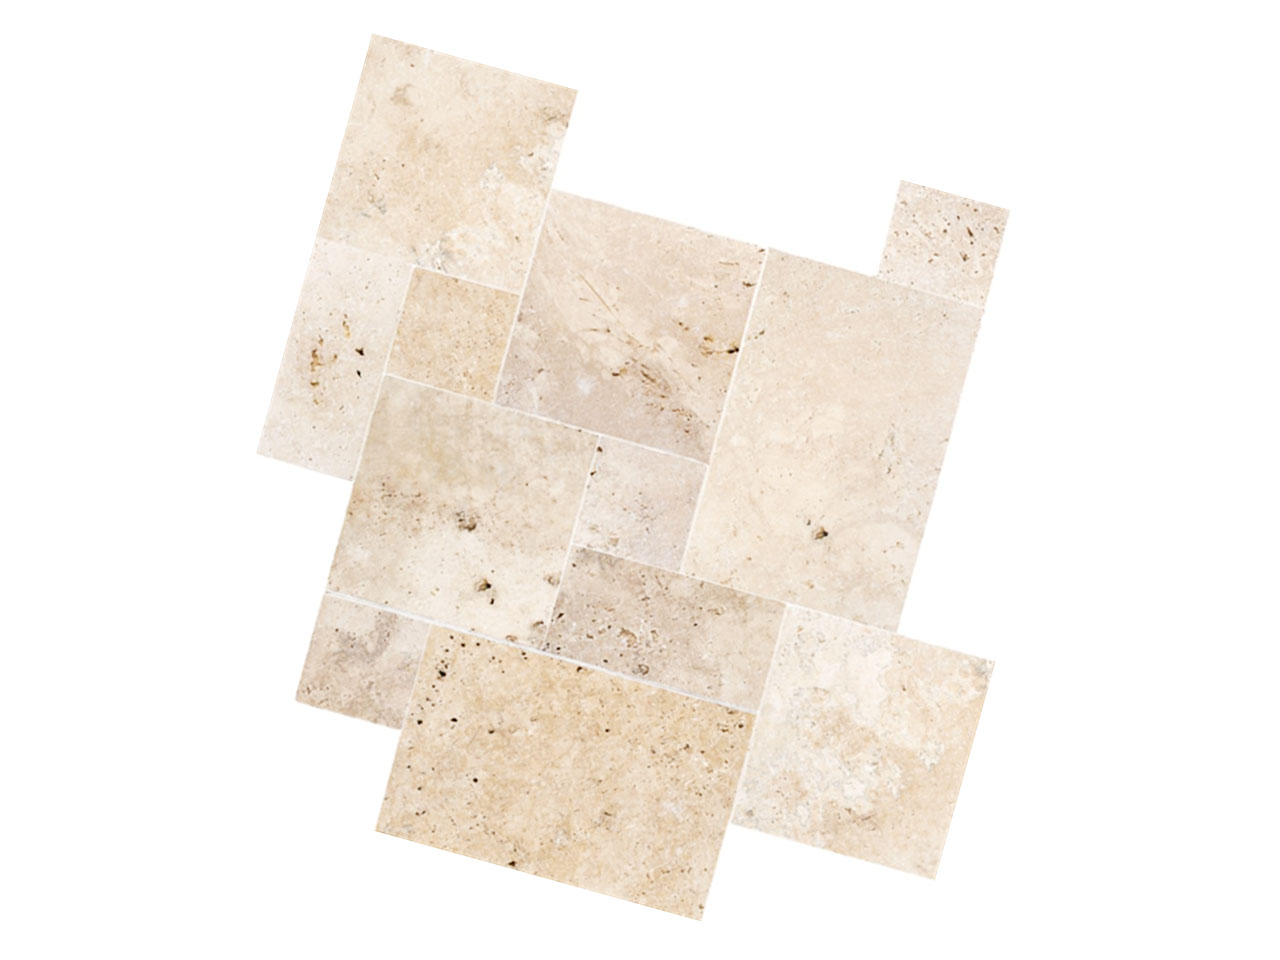 IVORY FRENCH PATTERN TRAVERTINE TILES SALE<br/> <font color='red'>$49m2 inc GST</font>